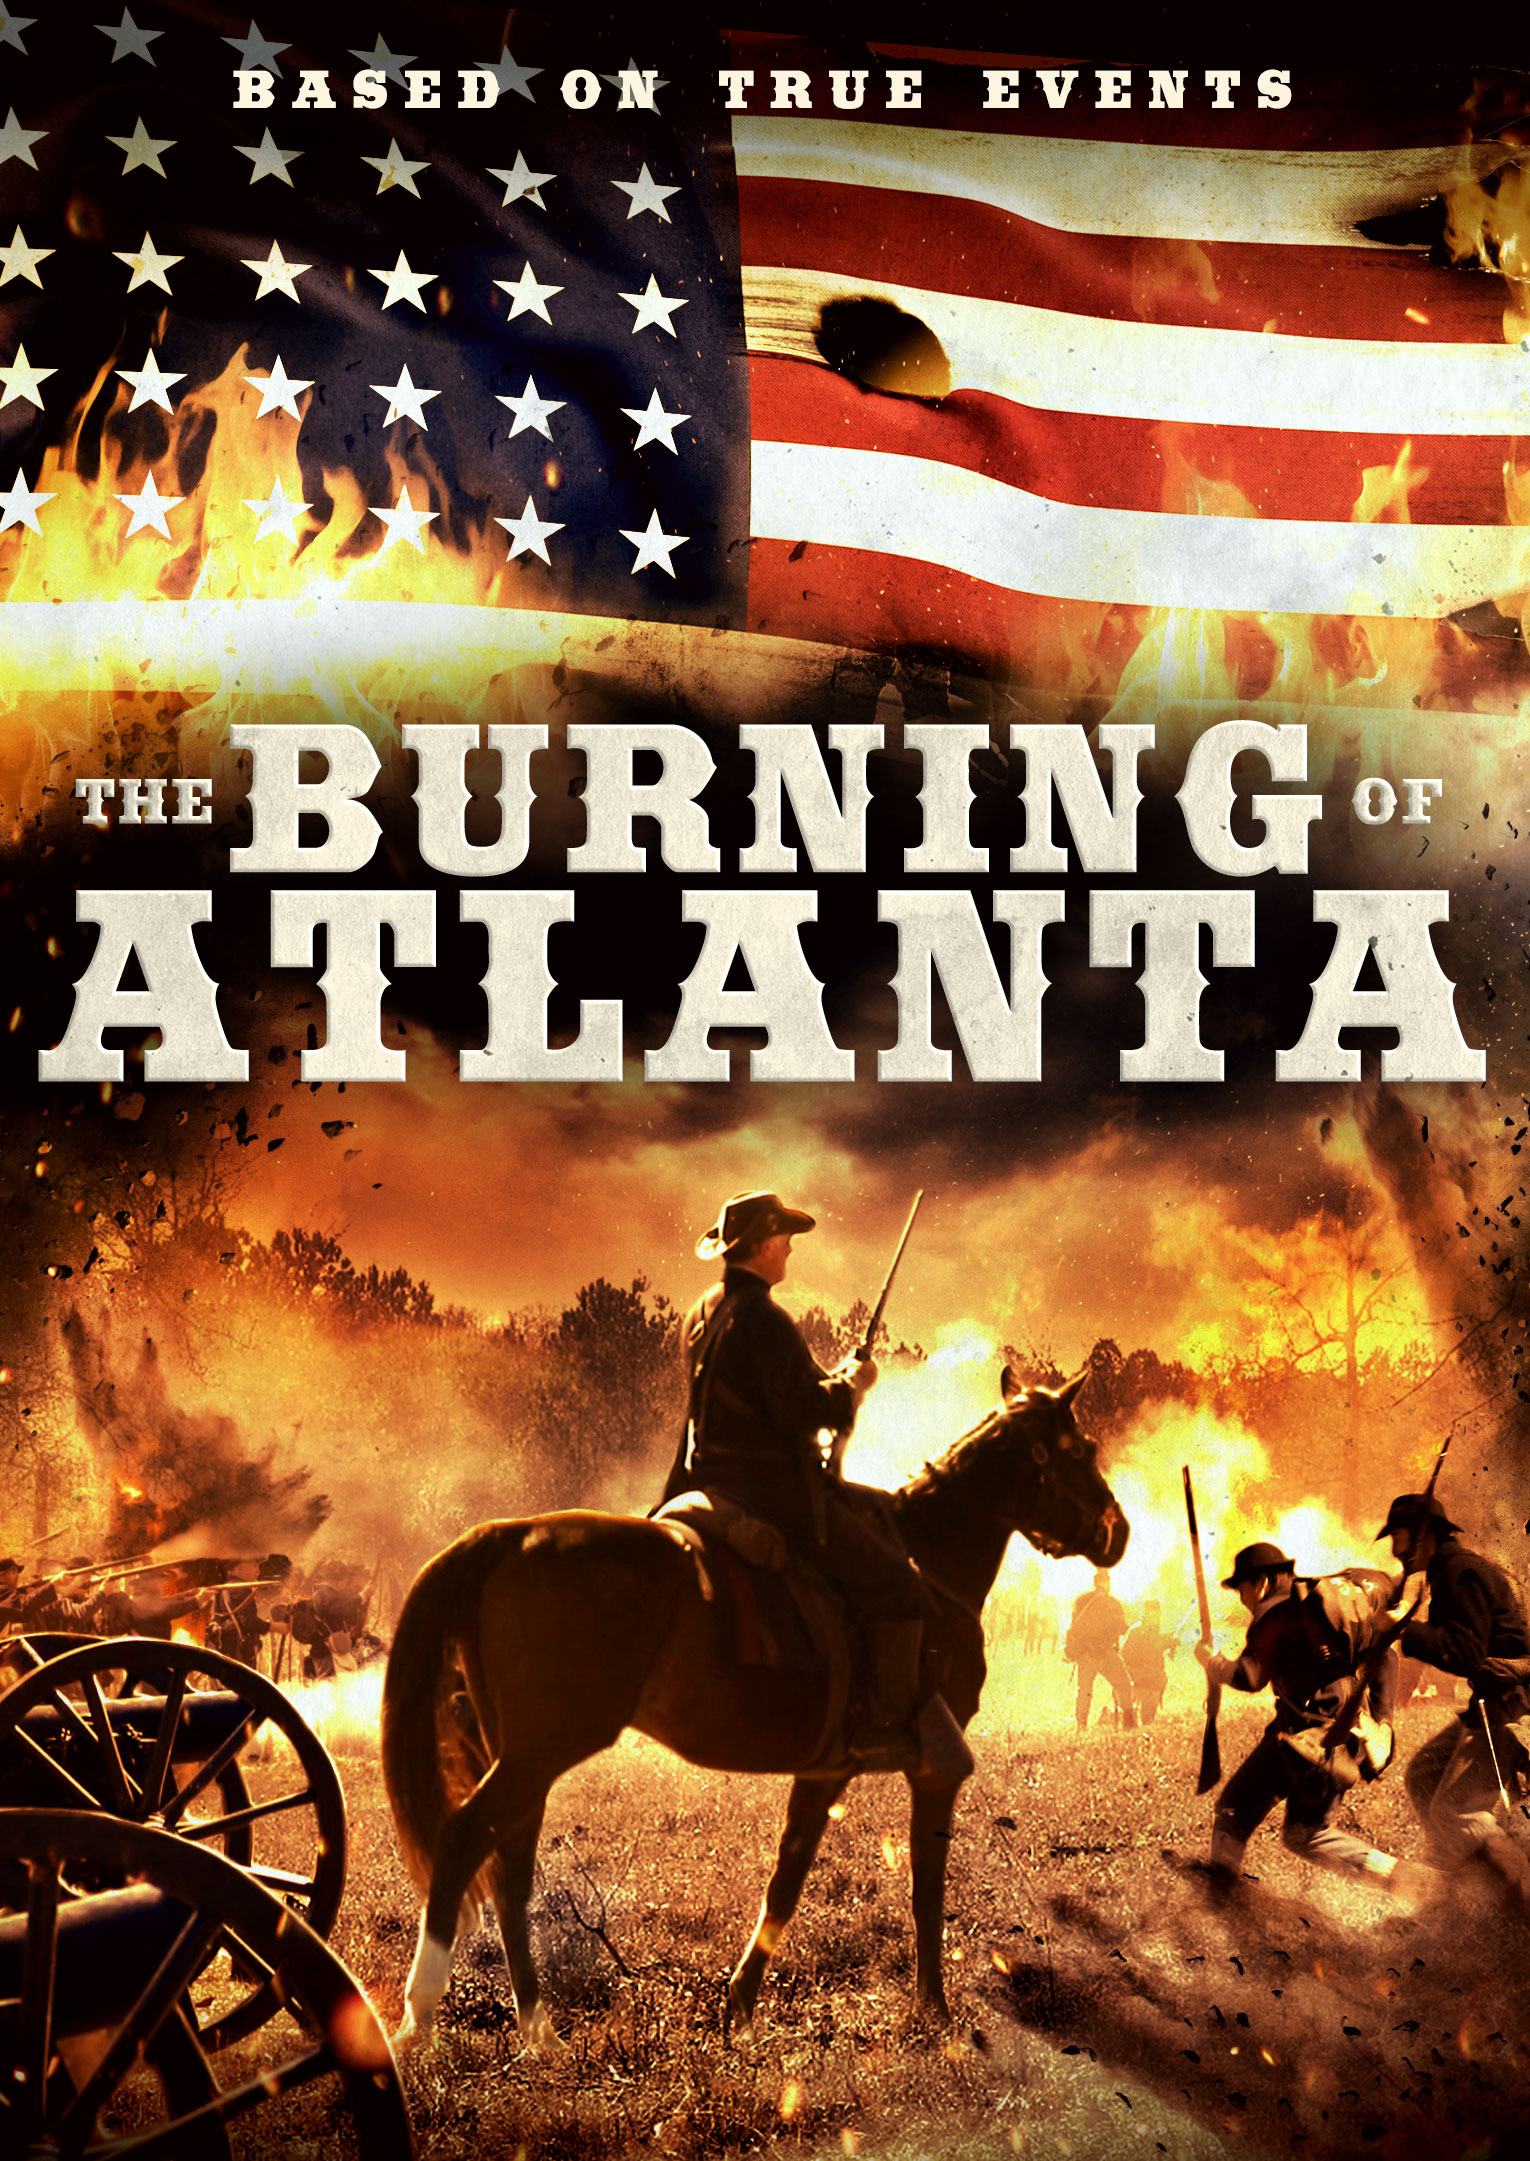 The Burning of Atlanta (2020)